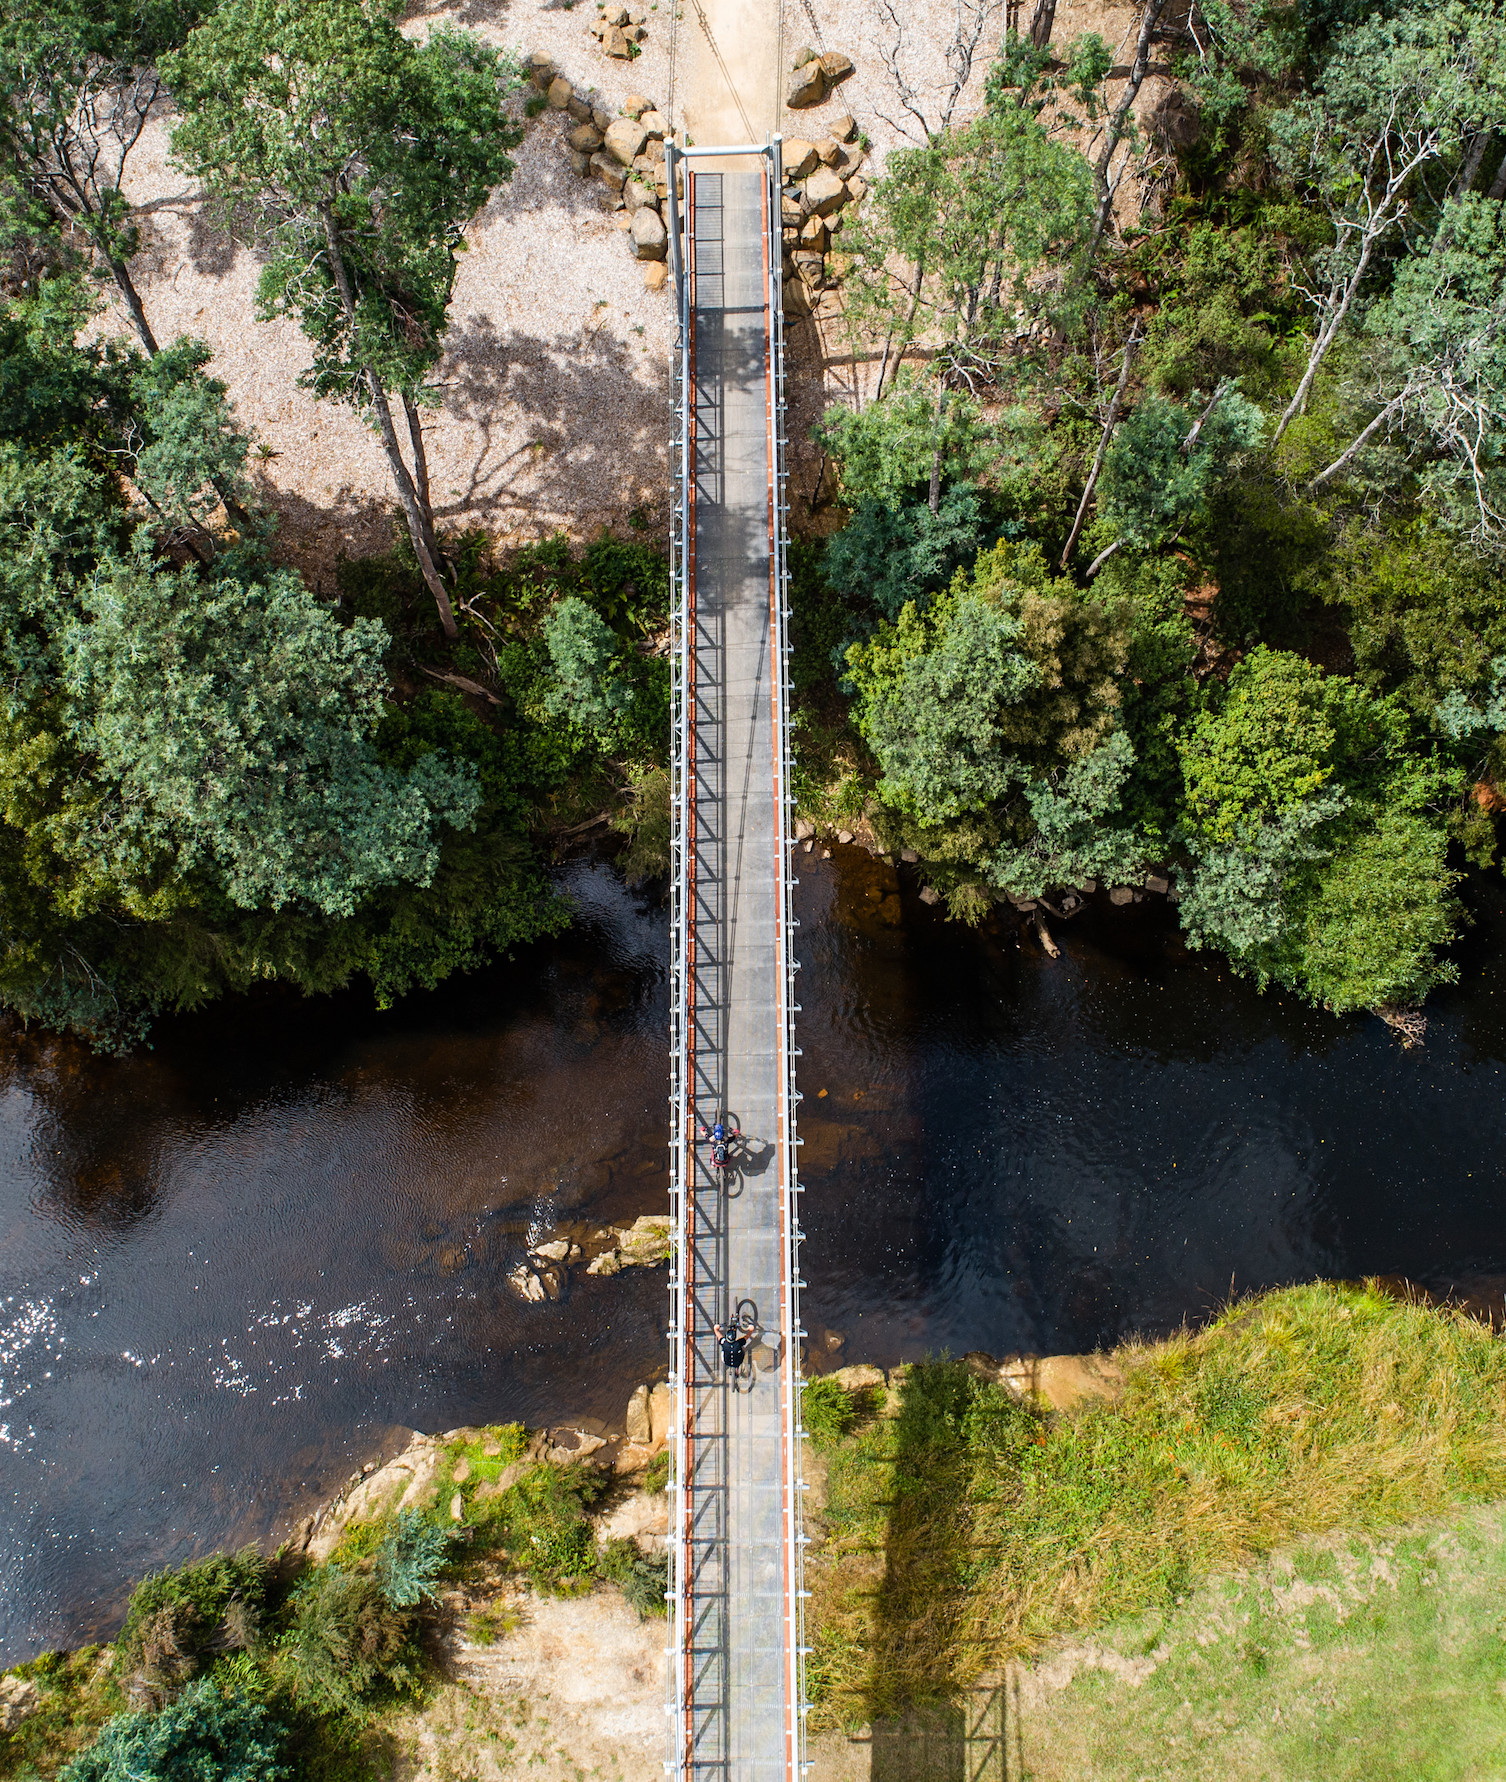 An aerial view of a suspension bridge at Blue Derby.